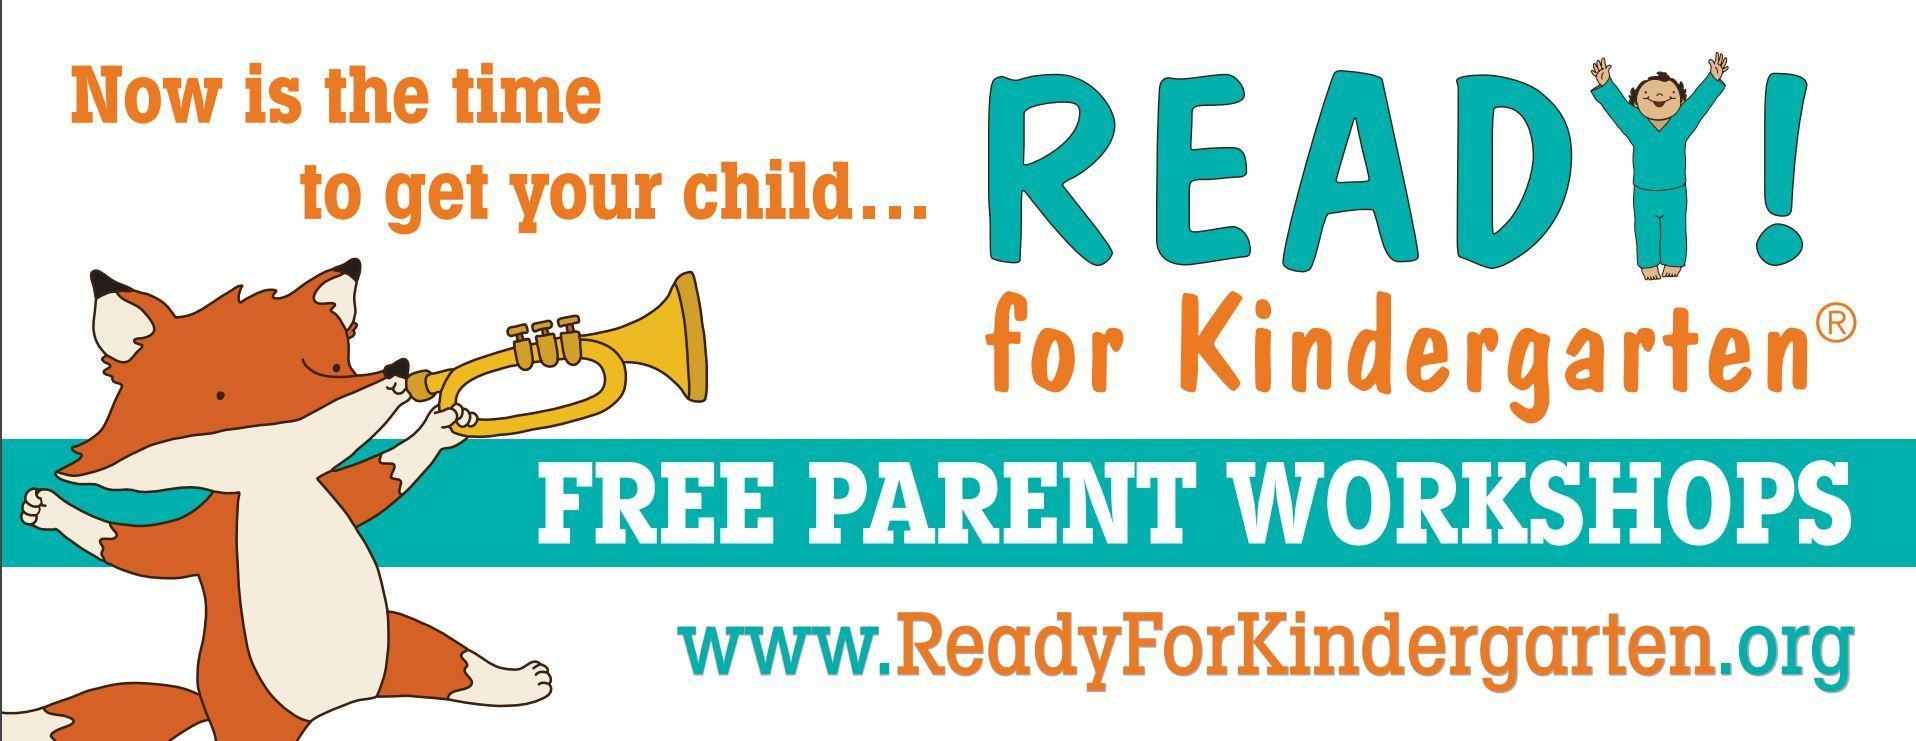 Banner art supplied by Ready! for Kindergarten featuring a fox blowing a  horn calling out for families to get ready for kindergarten